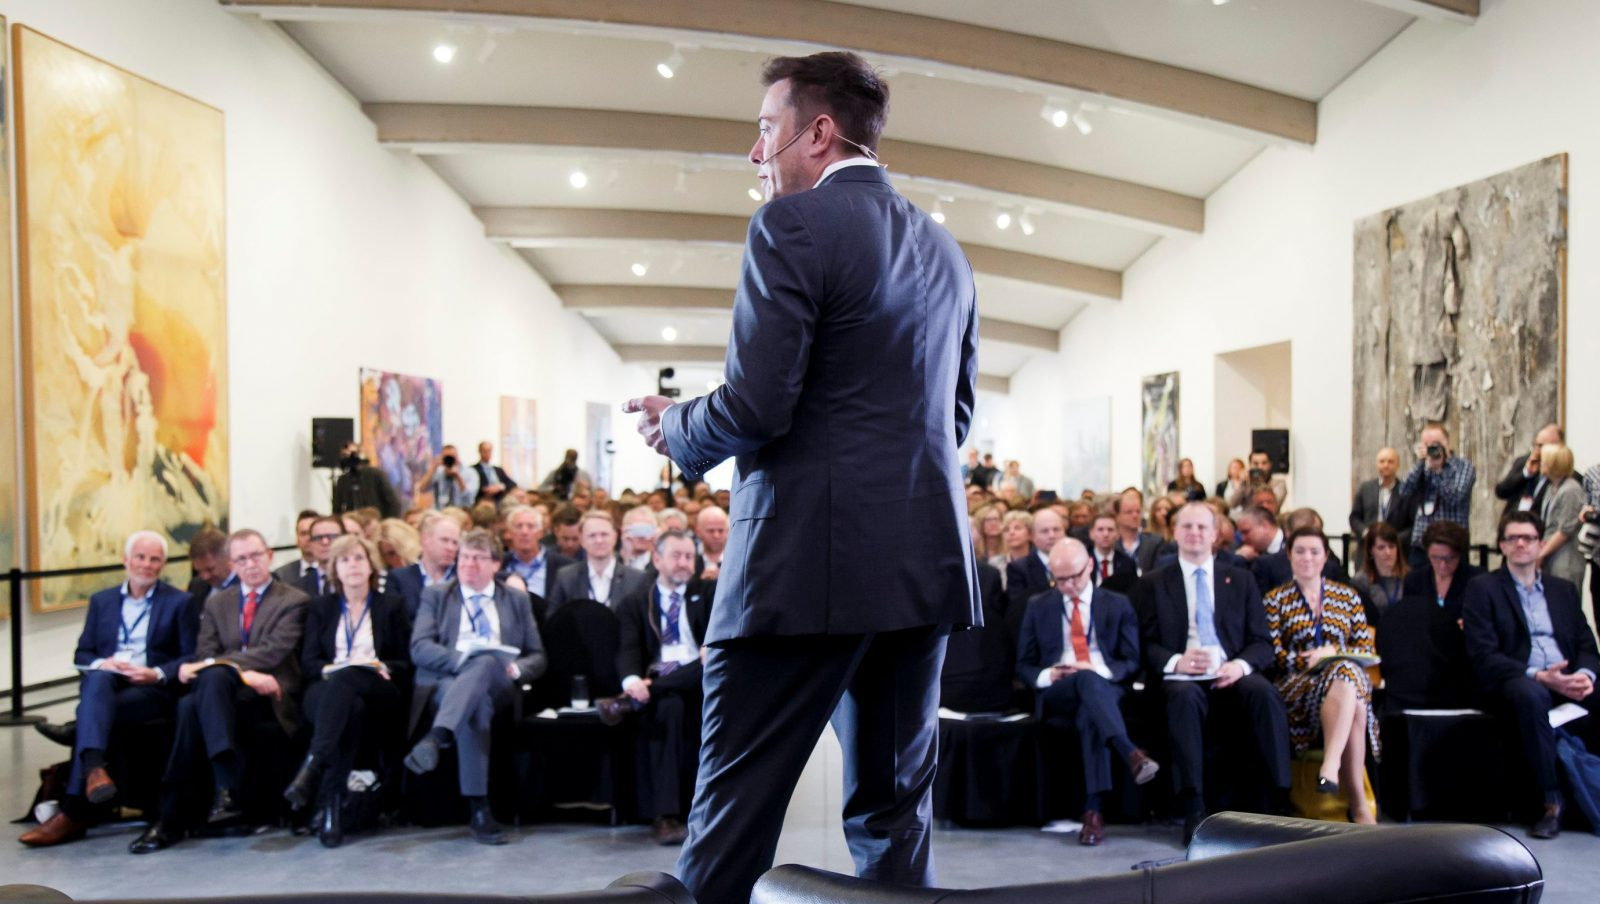 CEO of Tesla Motors Elon Musk speaks at an environmental conference at Astrup Fearnley Museum in Oslo, Norway April 21, 2016.